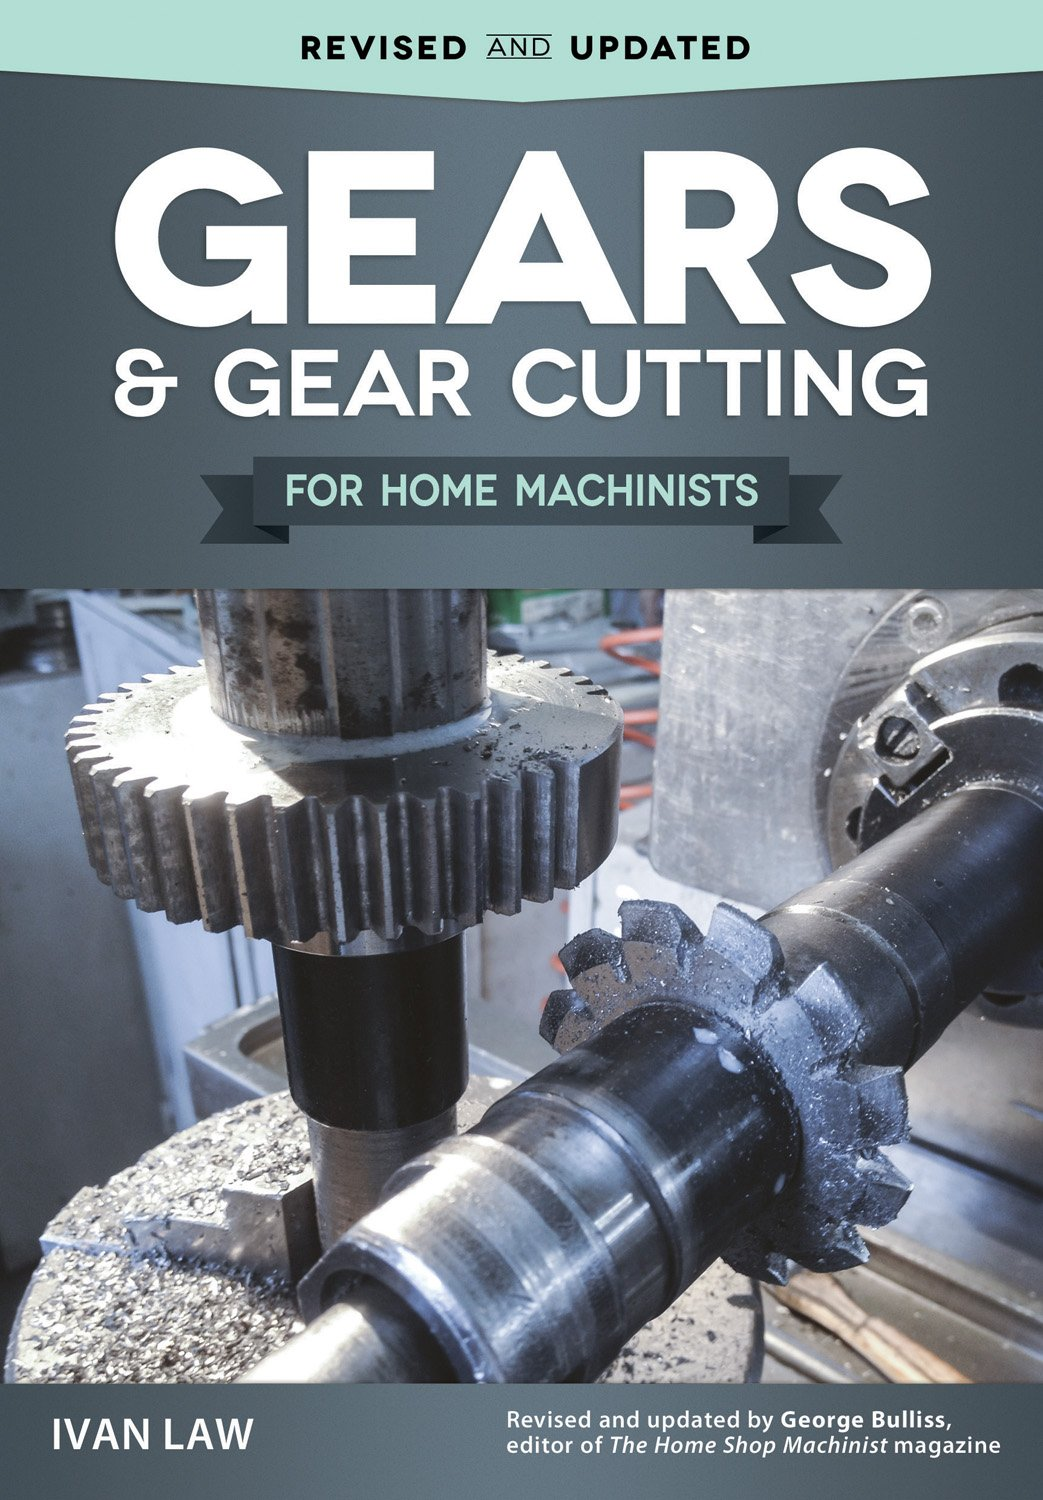 Gears and Gear Cutting for Home Machinists (Fox Chapel Publishing) Practical, Hands-On Guide to Designing and Cutting Gears Inexpensively on a Lathe or Milling Machine; Simple, Non-Technical Language by Fox Chapel Publishing